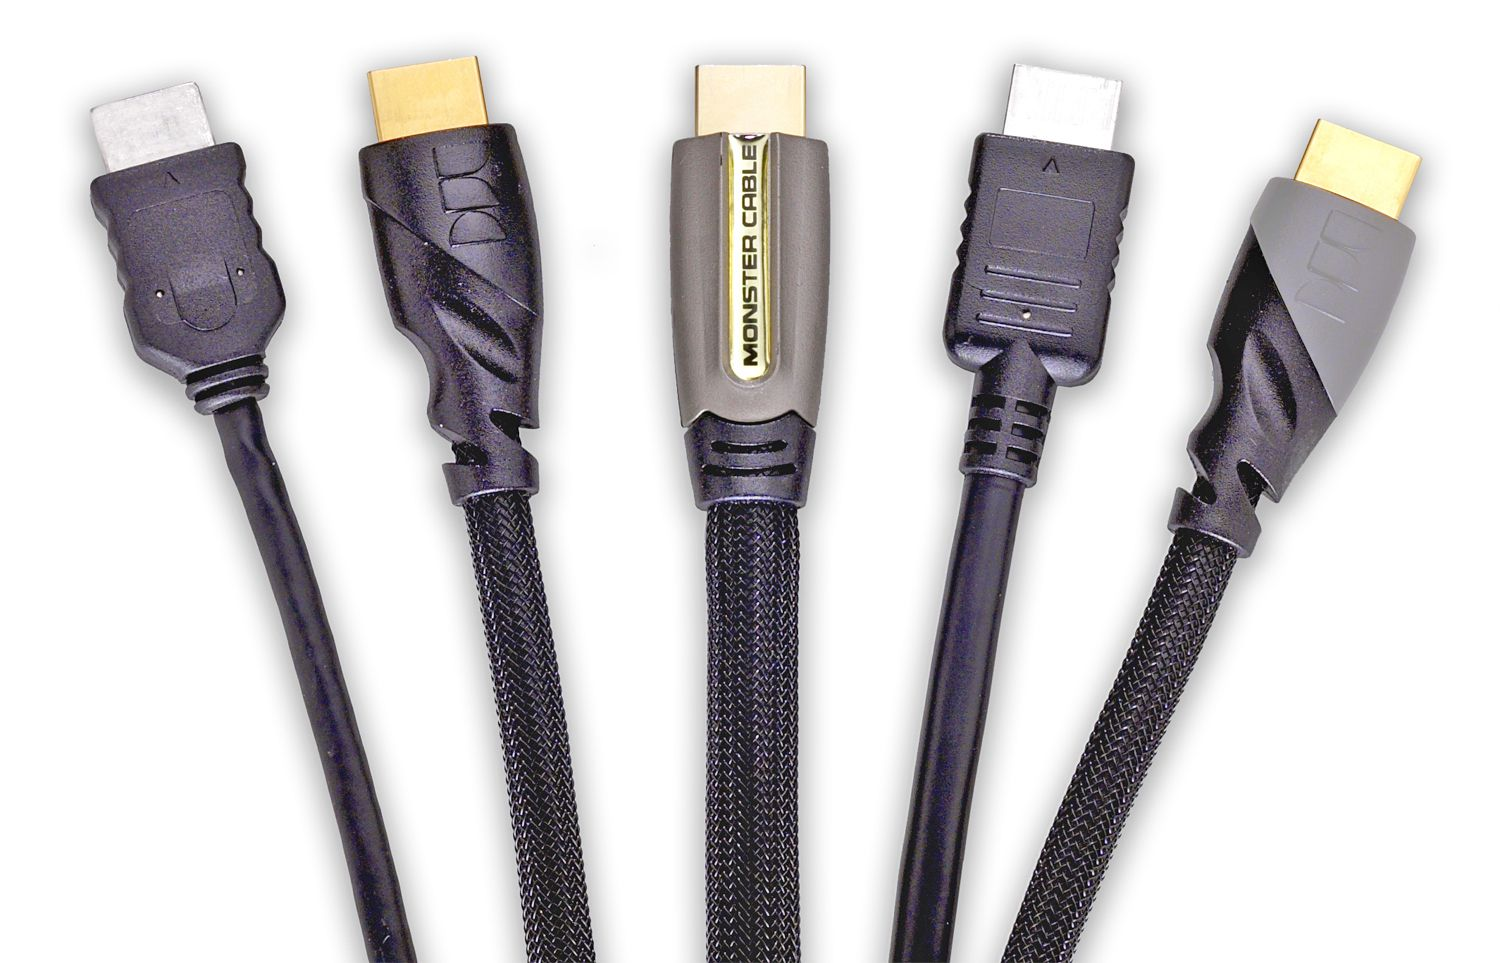 6/' ft foot Mini HDMI Cable PC HDMI Type C Male-to-Male Monitor Video HDTV